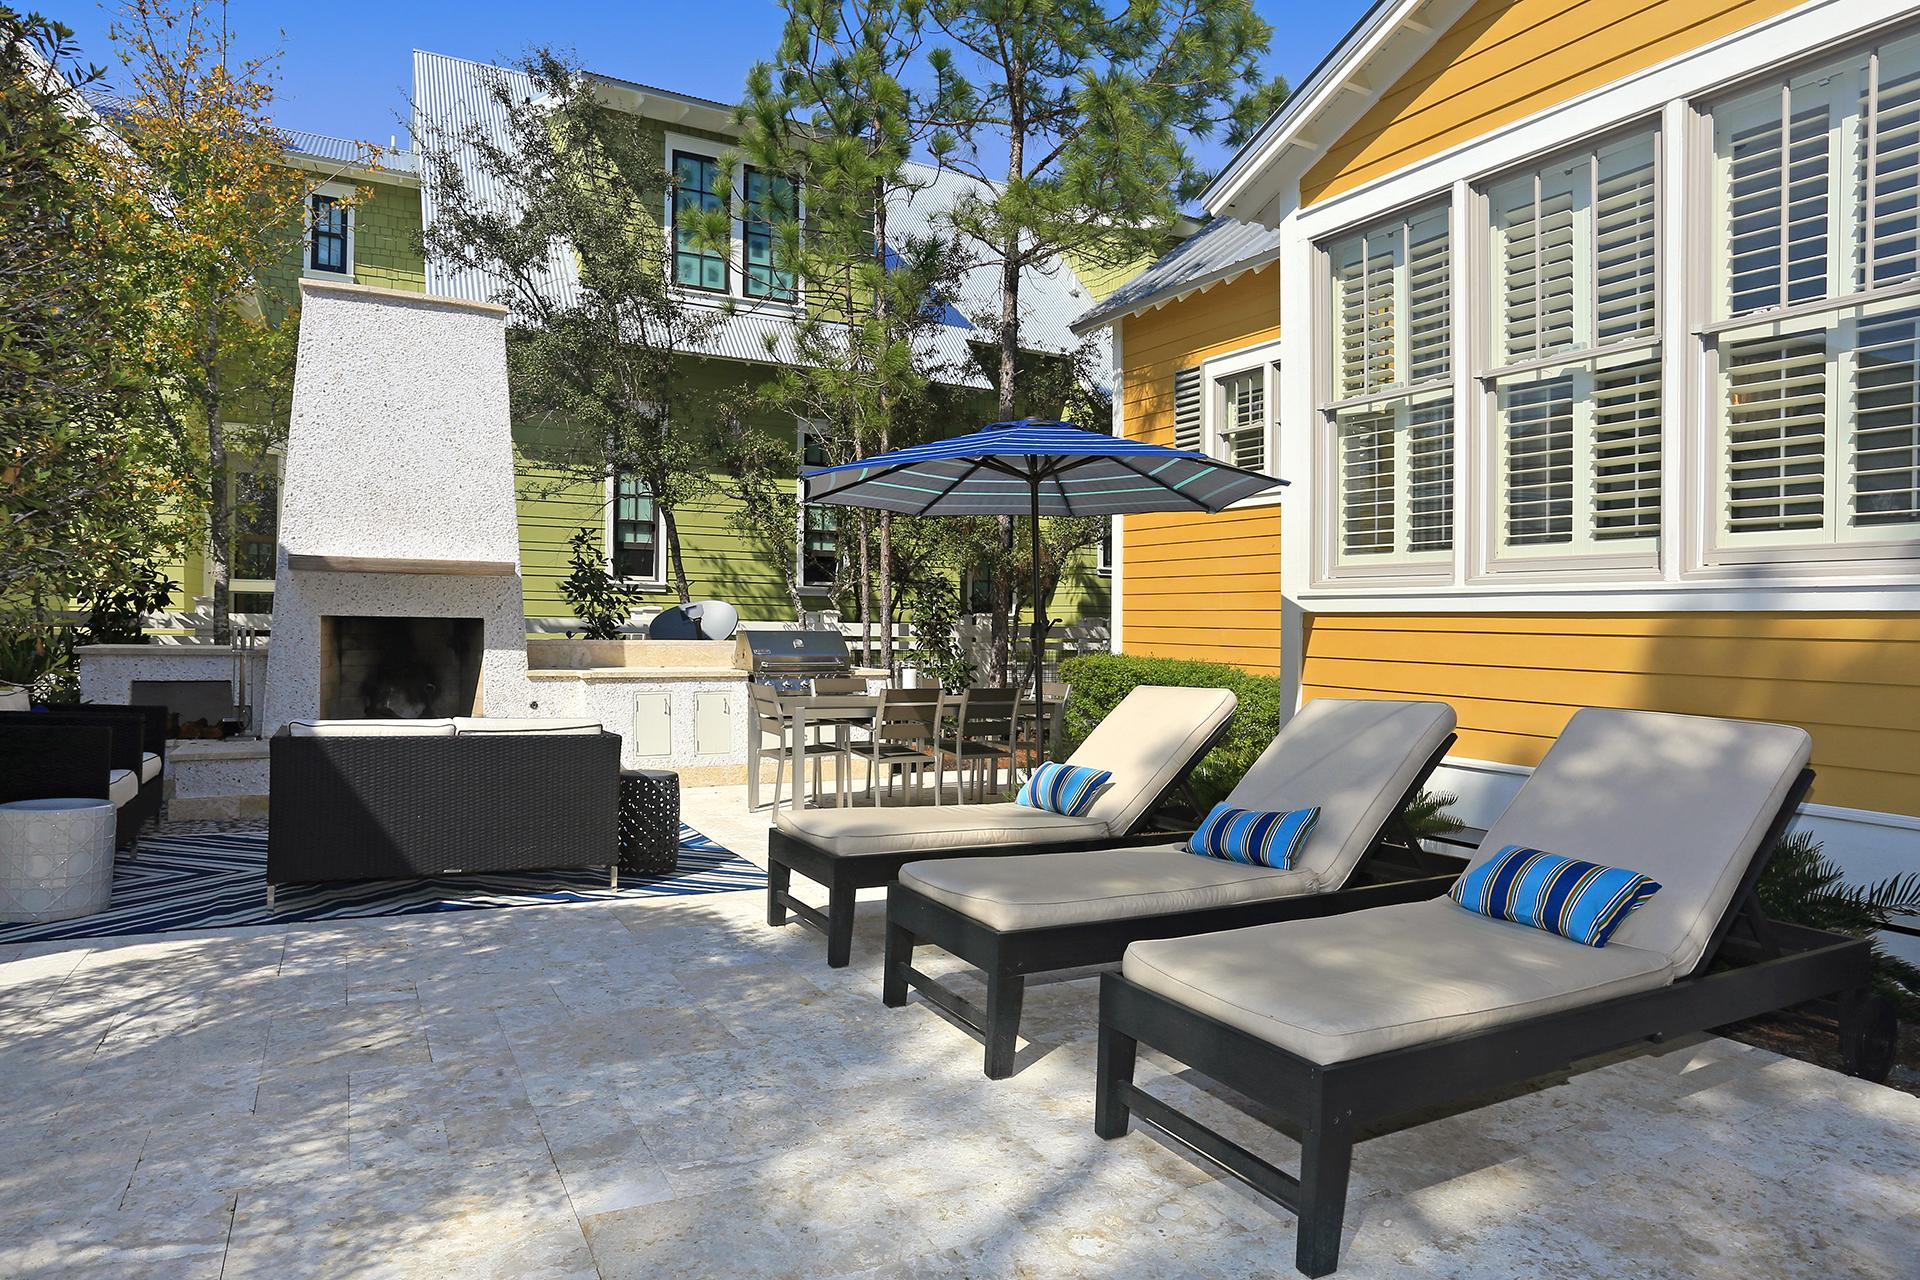 Sunny and 75 | 30A Luxury Vacation Rentals